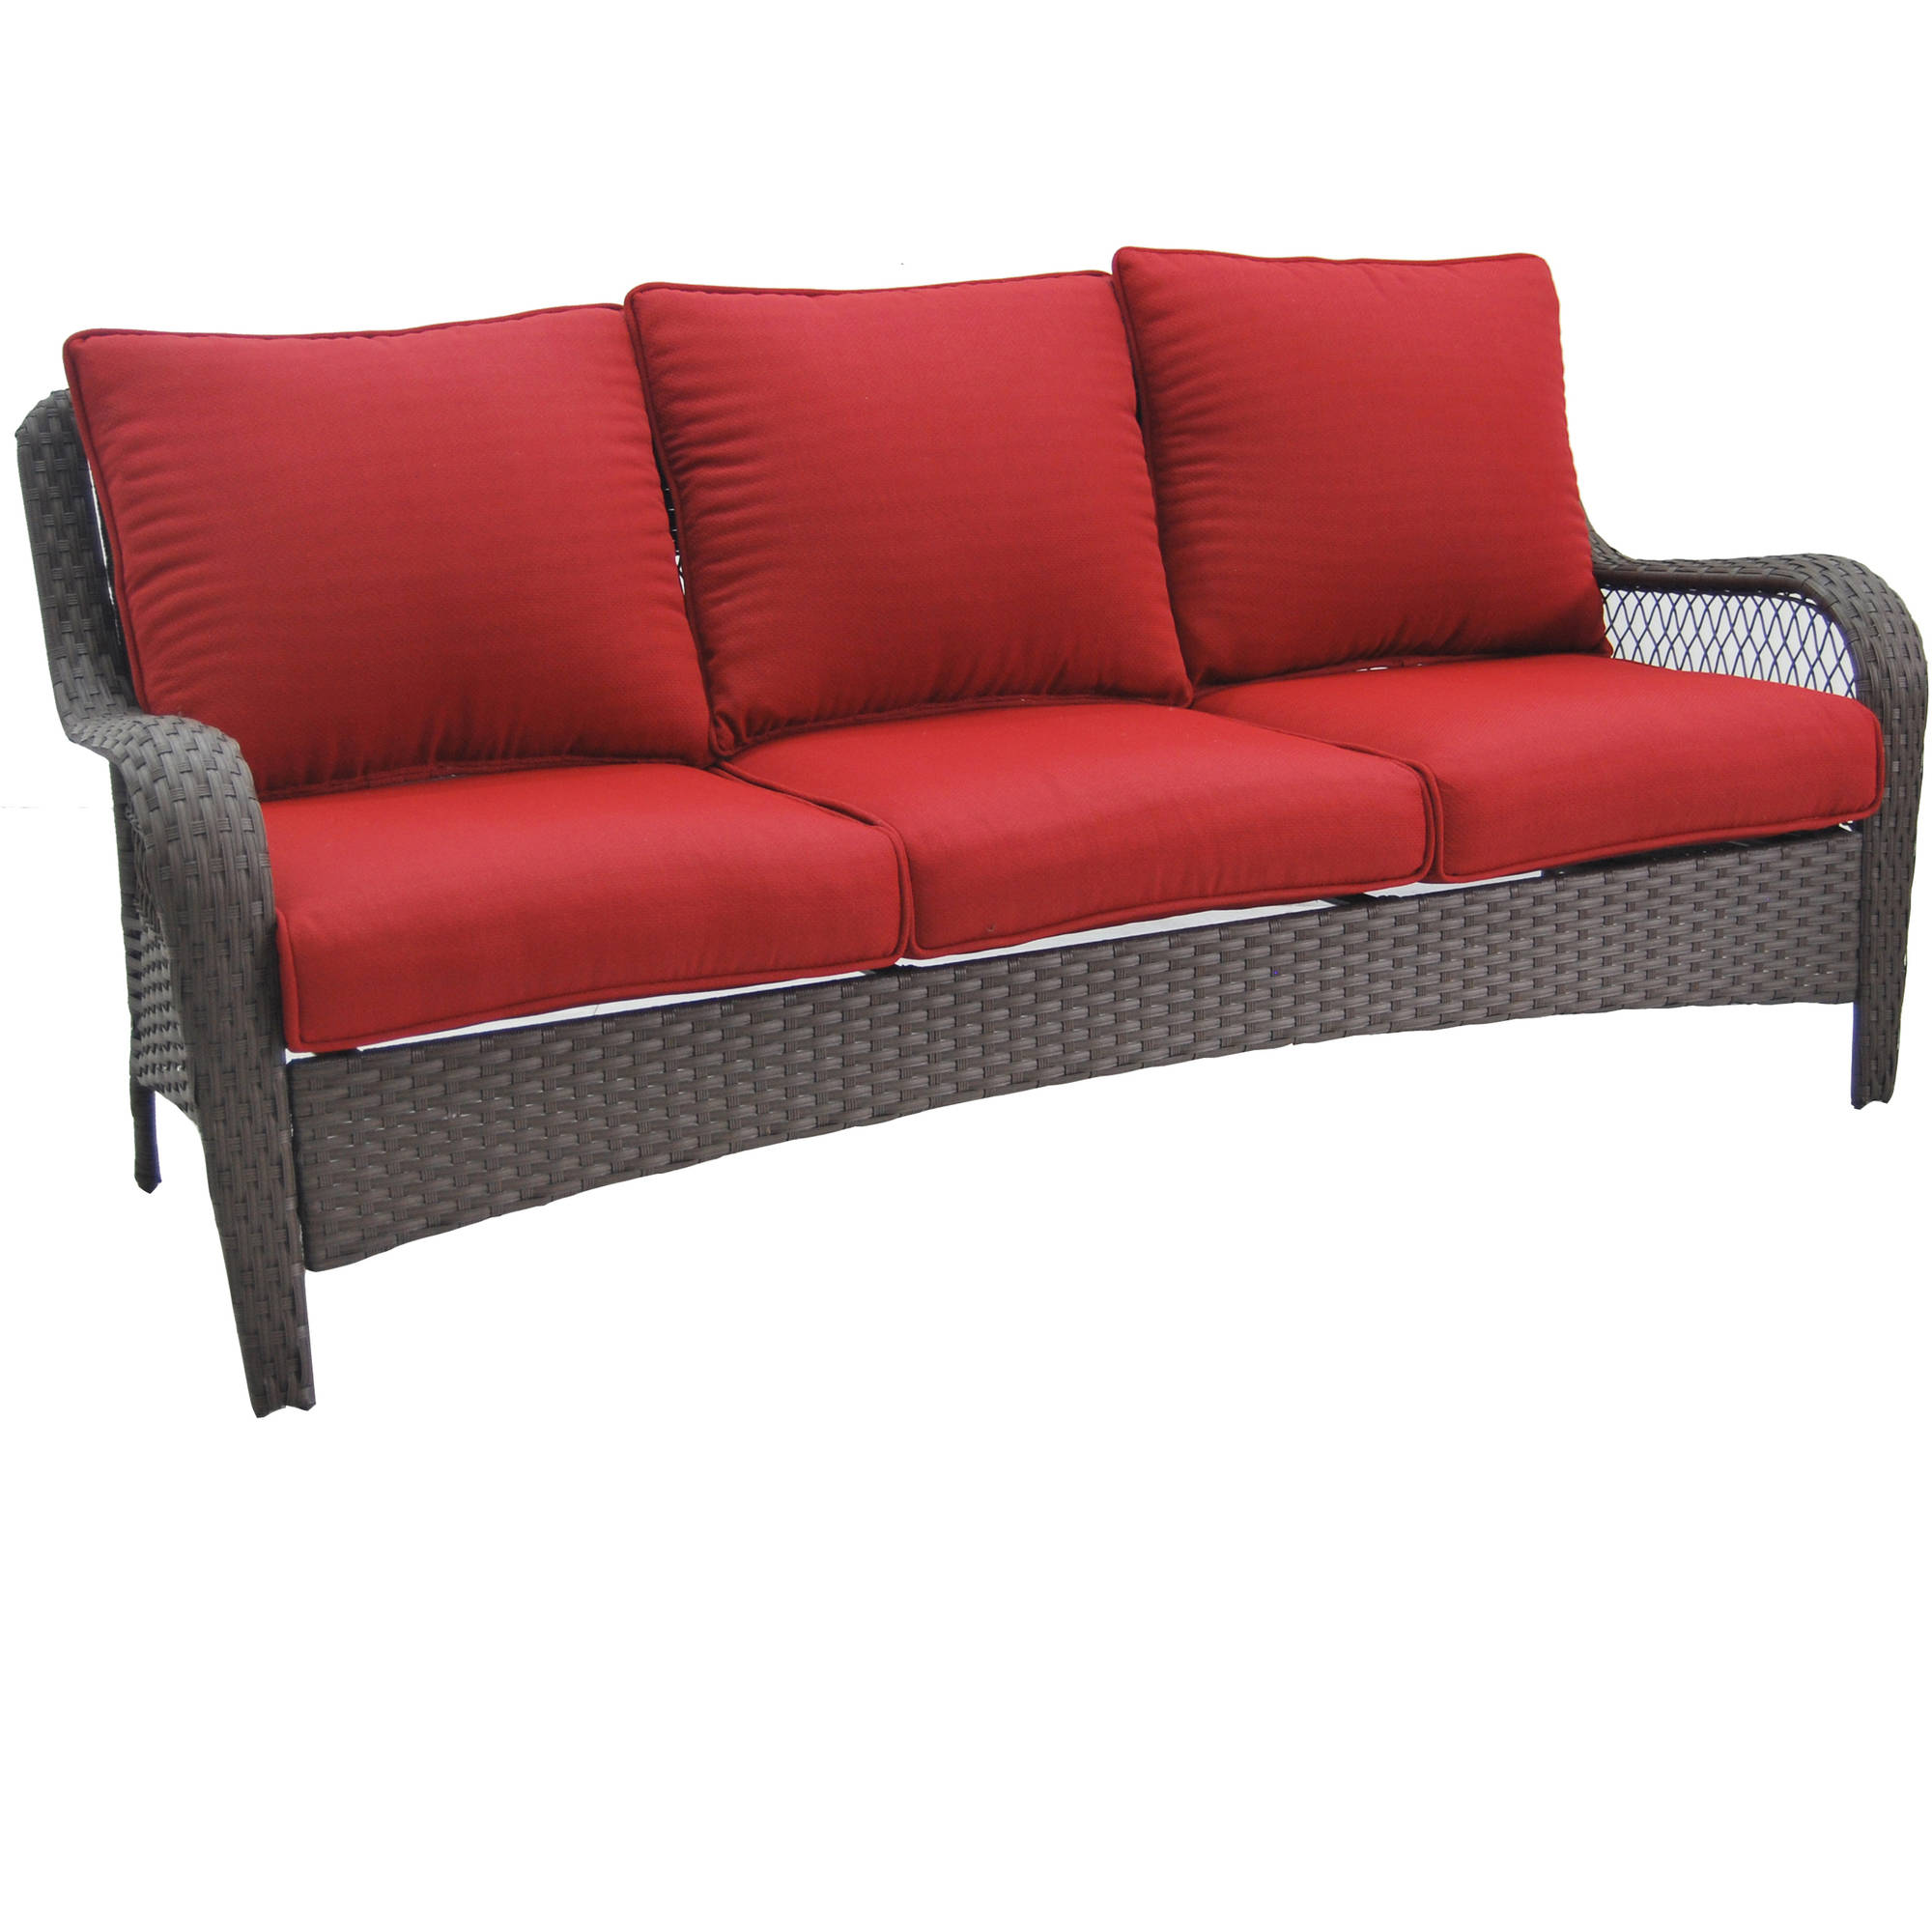 better homes and gardens colebrook outdoor sofa, seats 3 - walmart.com GFAOVLP